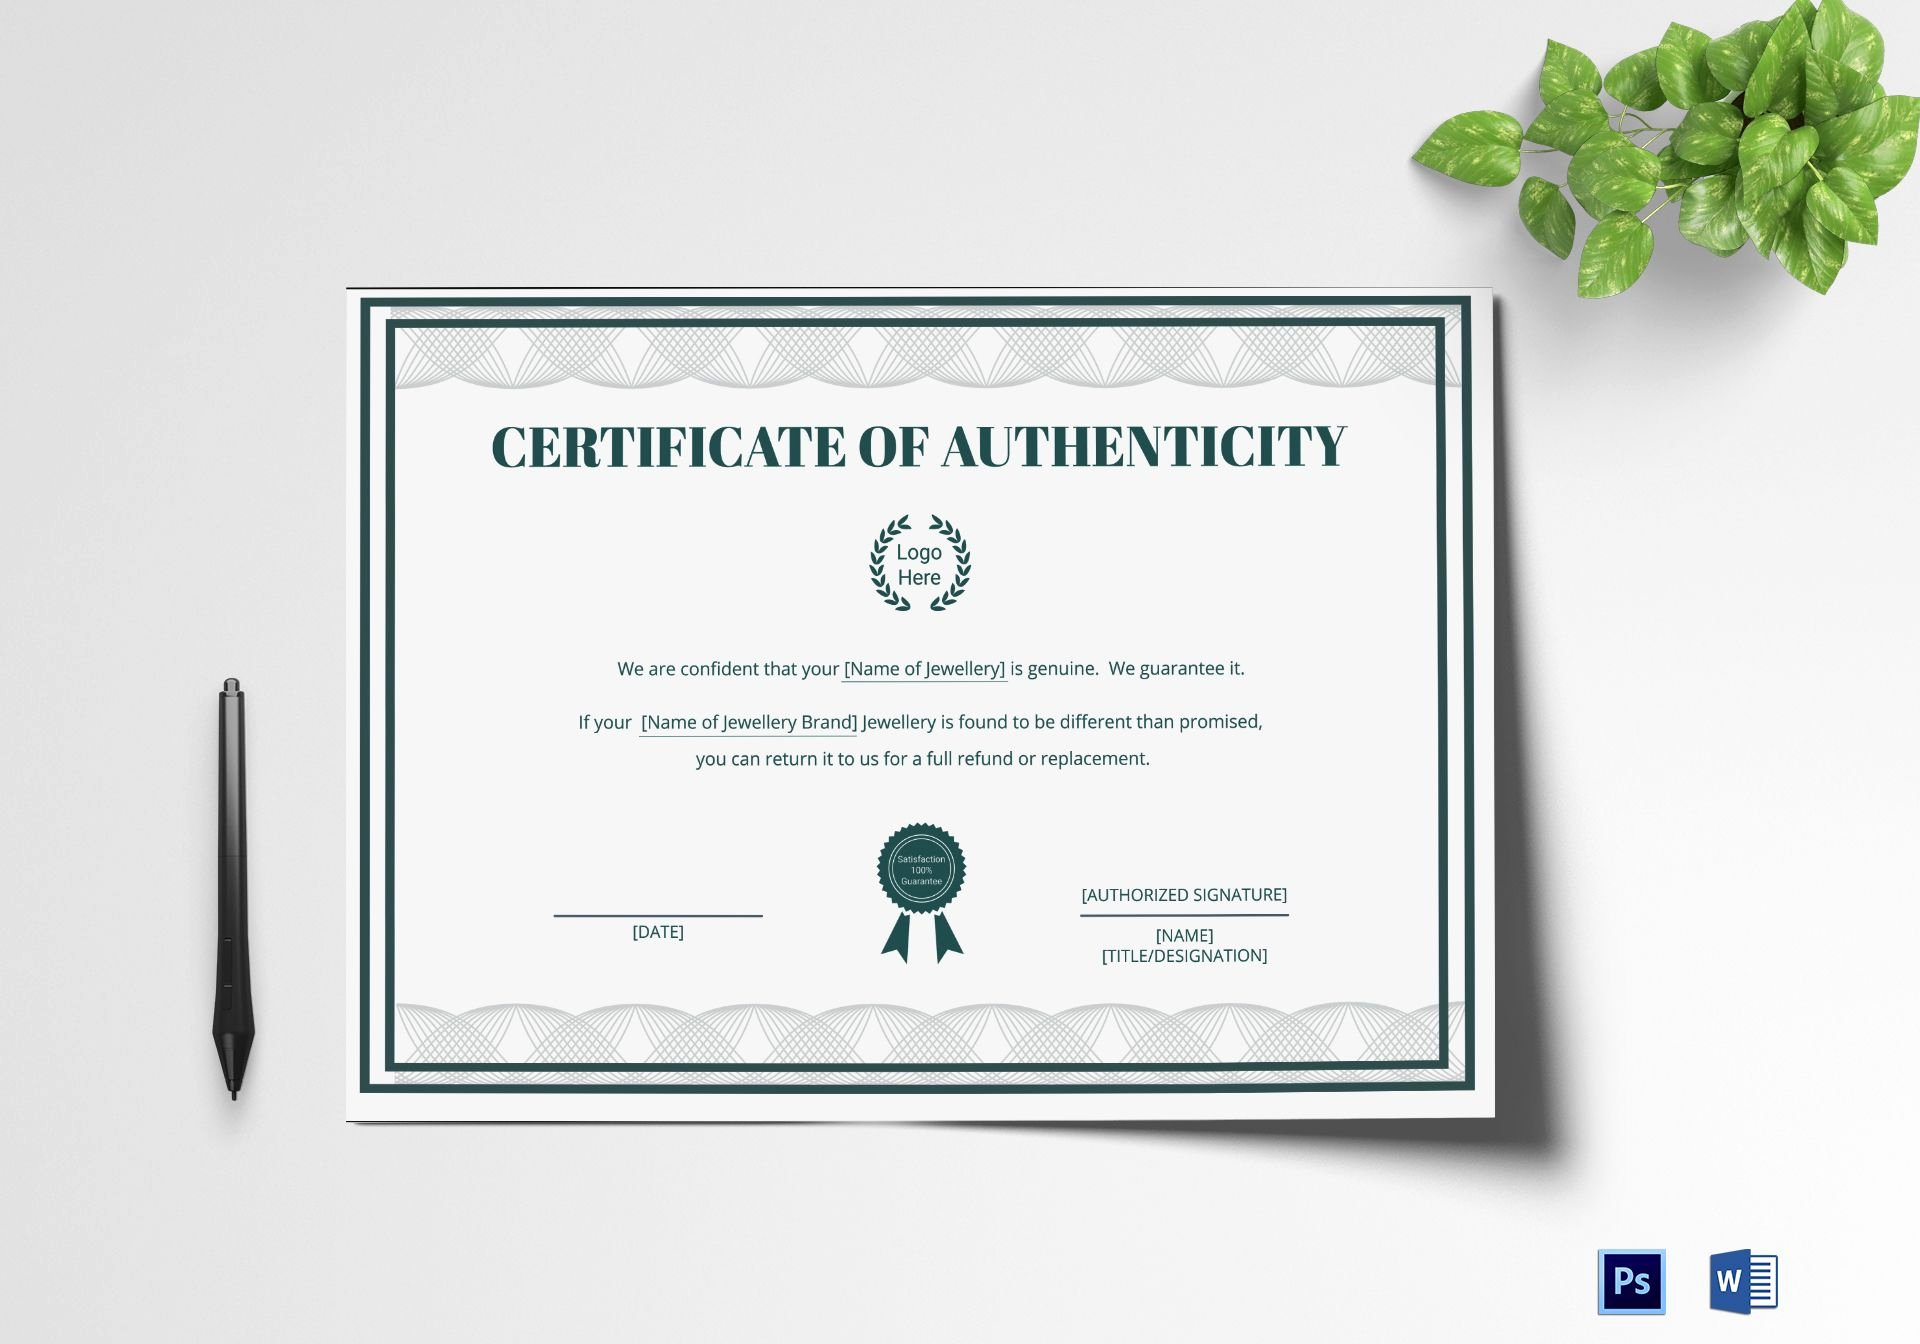 Certificate Of Authenticity Template Microsoft Word Beautiful Brand Authenticity Certificate Design Template In Psd Word